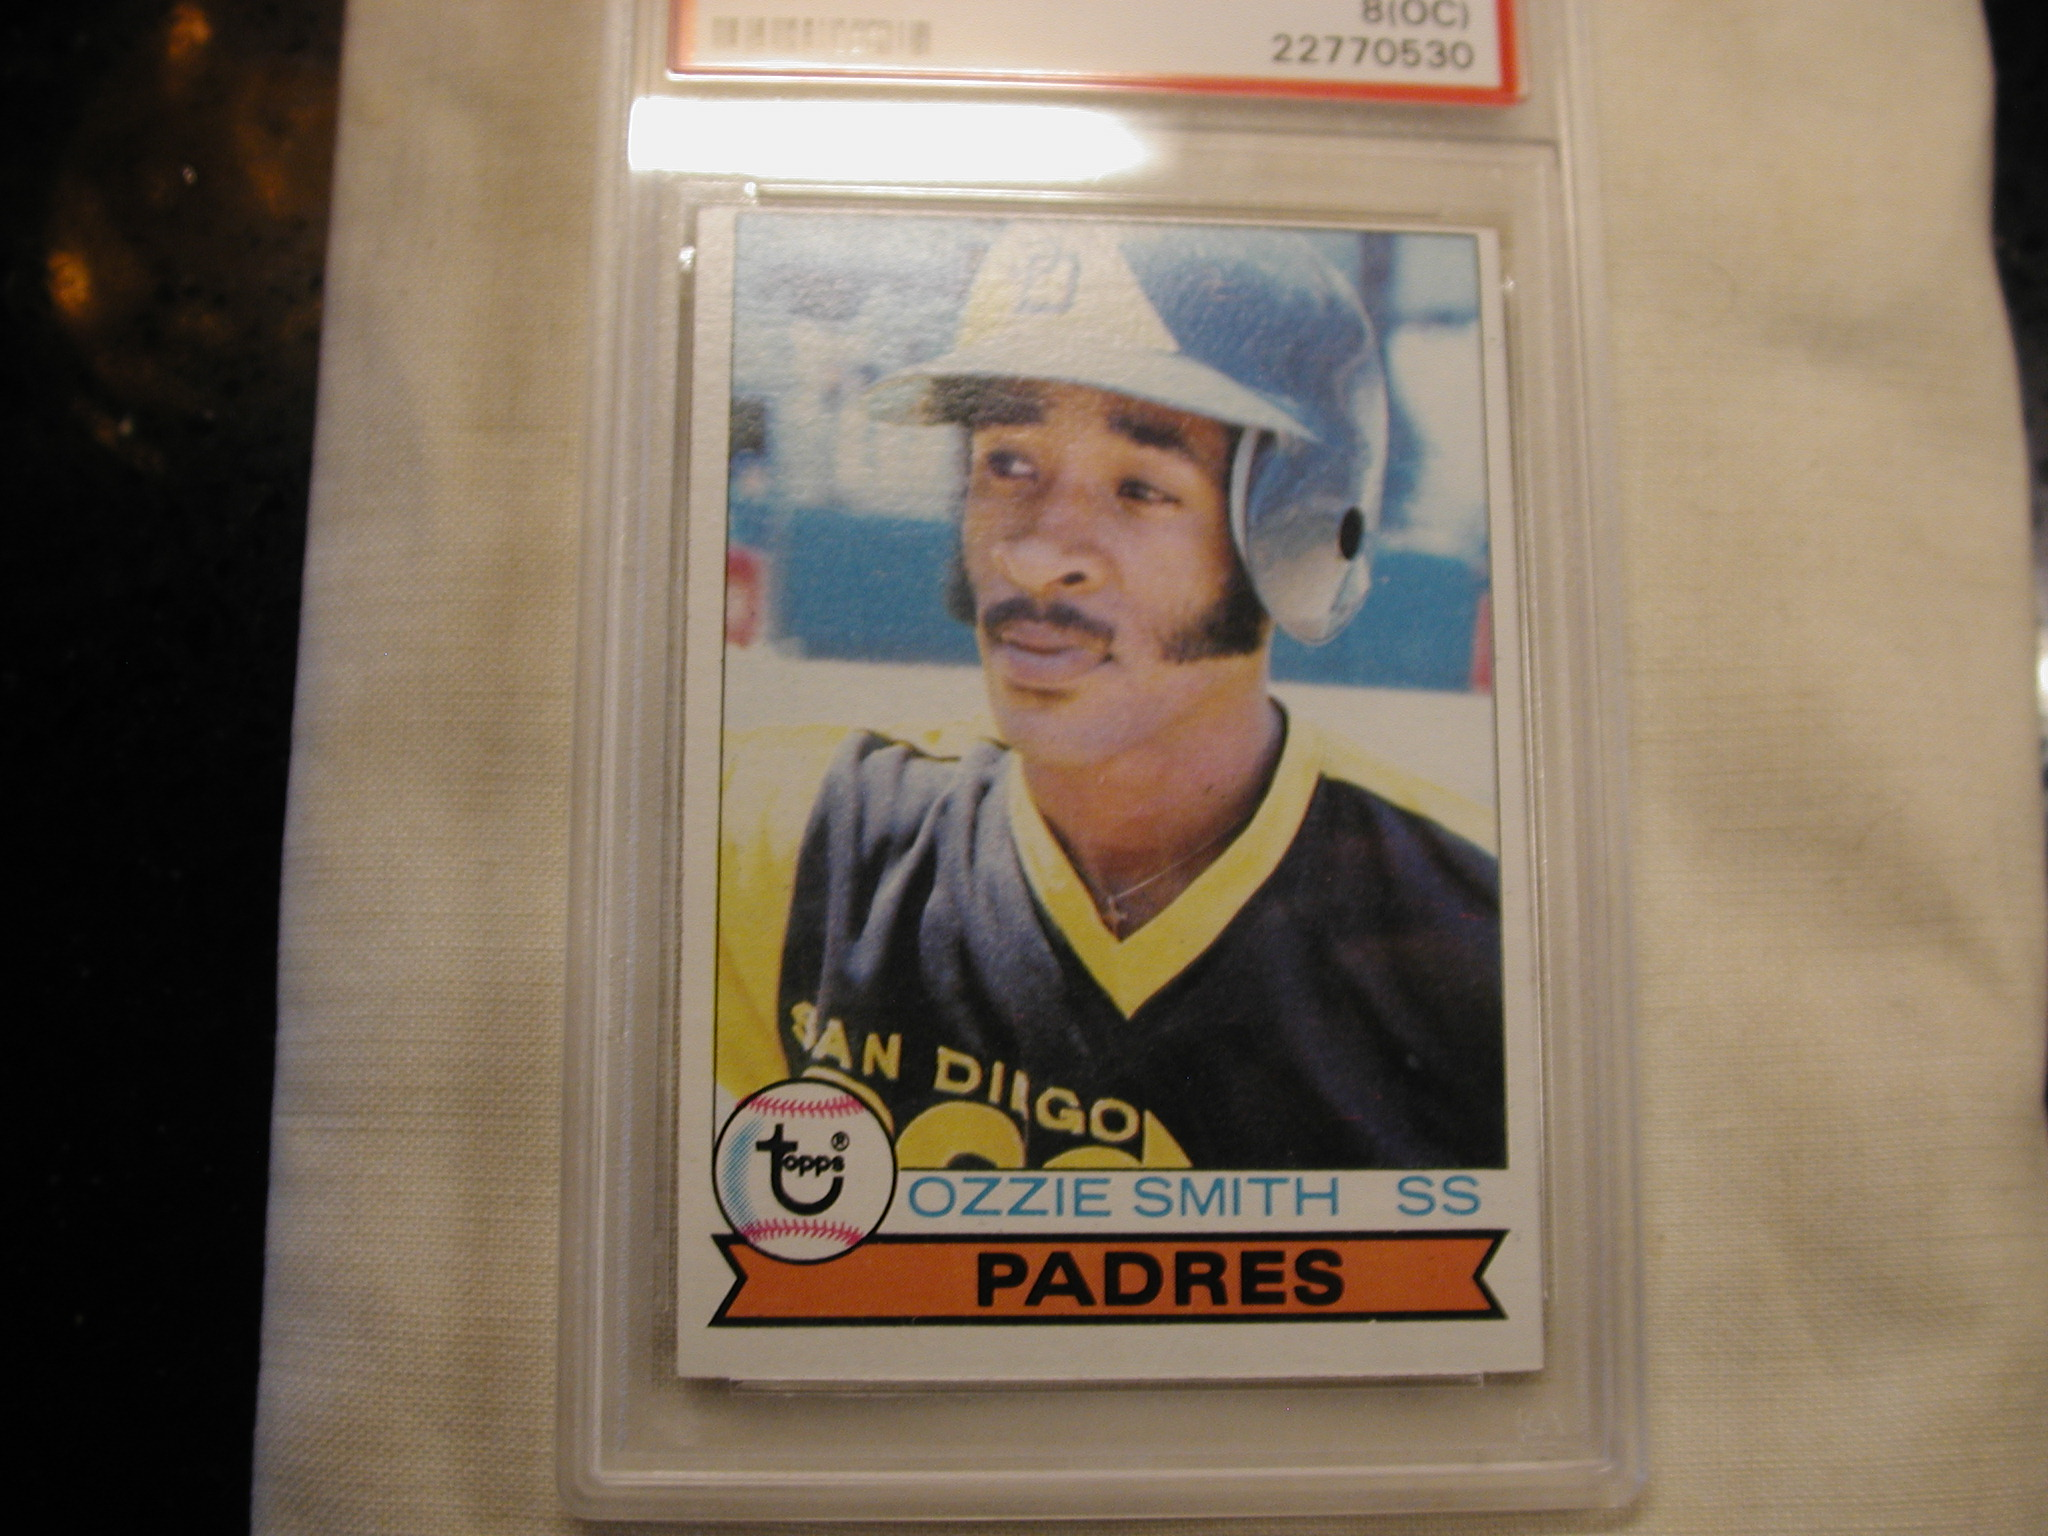 1979 Topps Ozzie Smith Rookie Baseball Card 116 Psa Graded